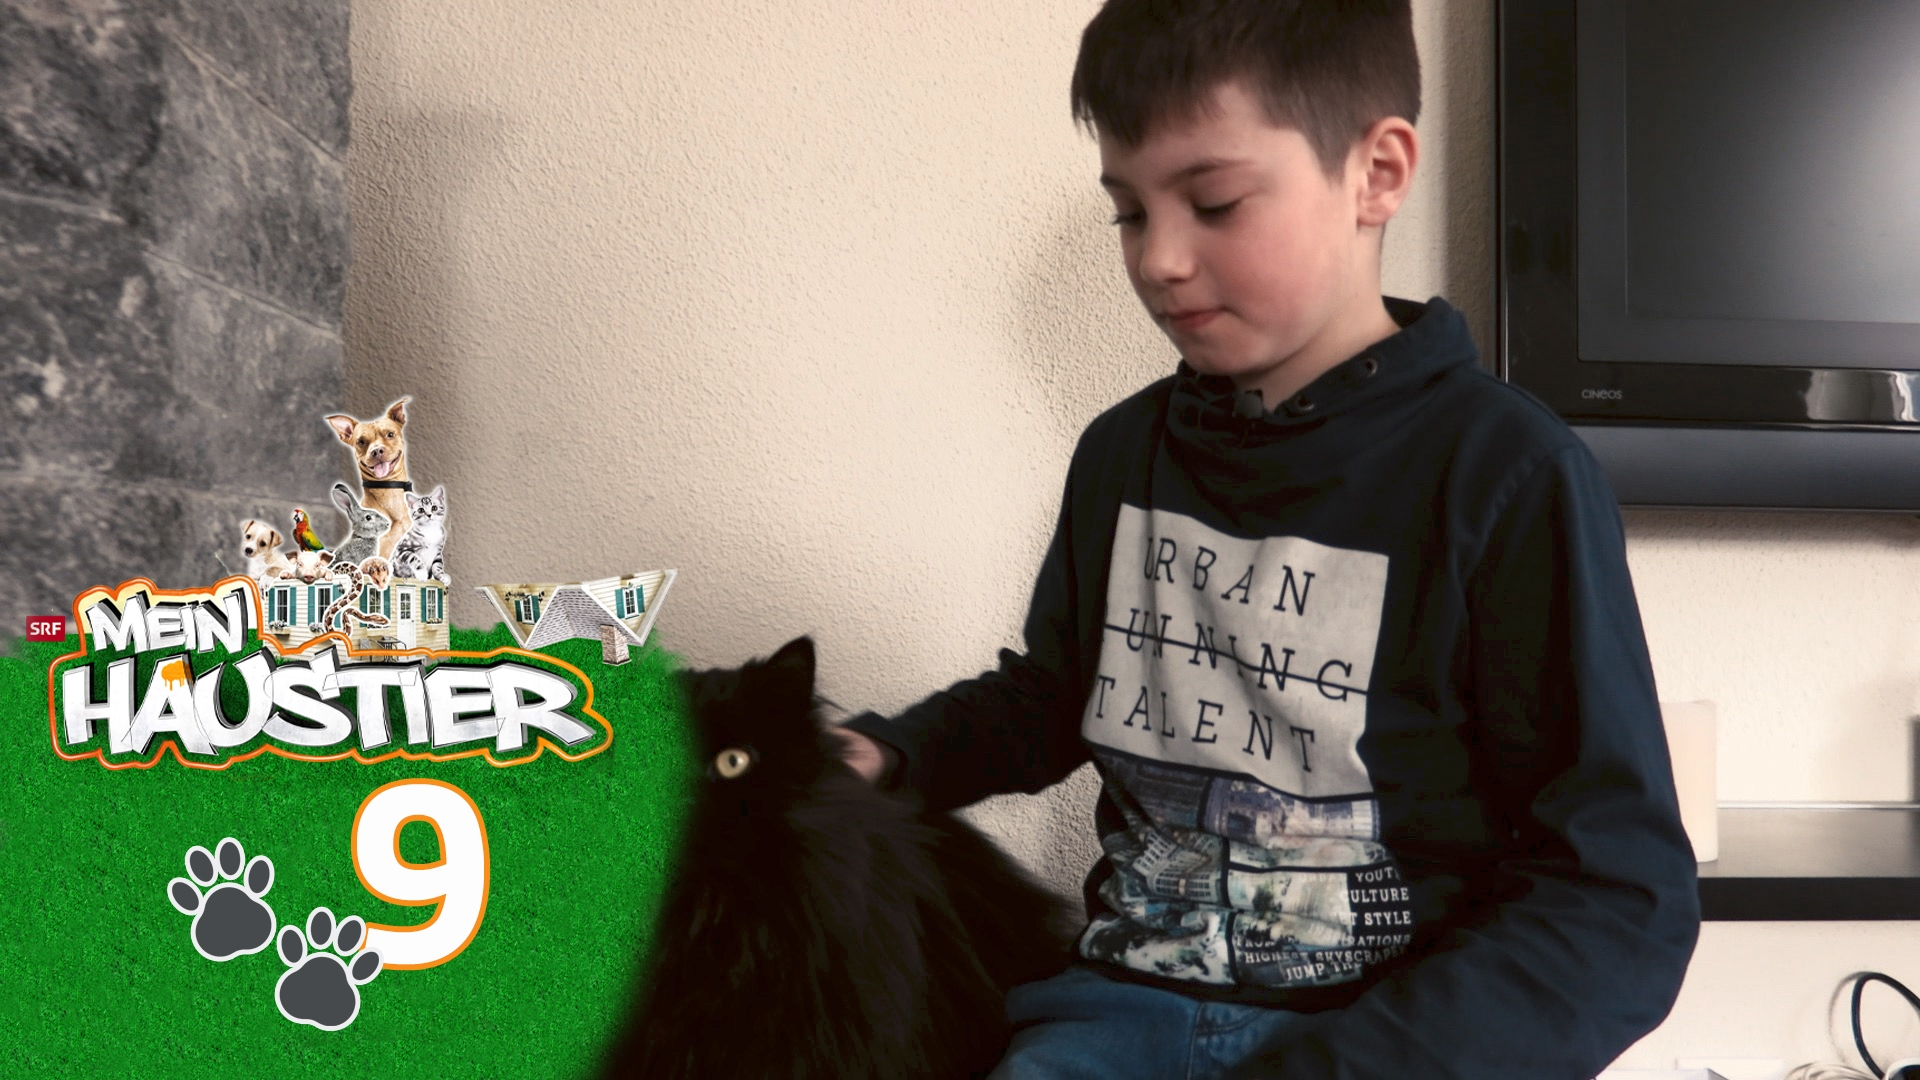 William und sein Kater Dusty